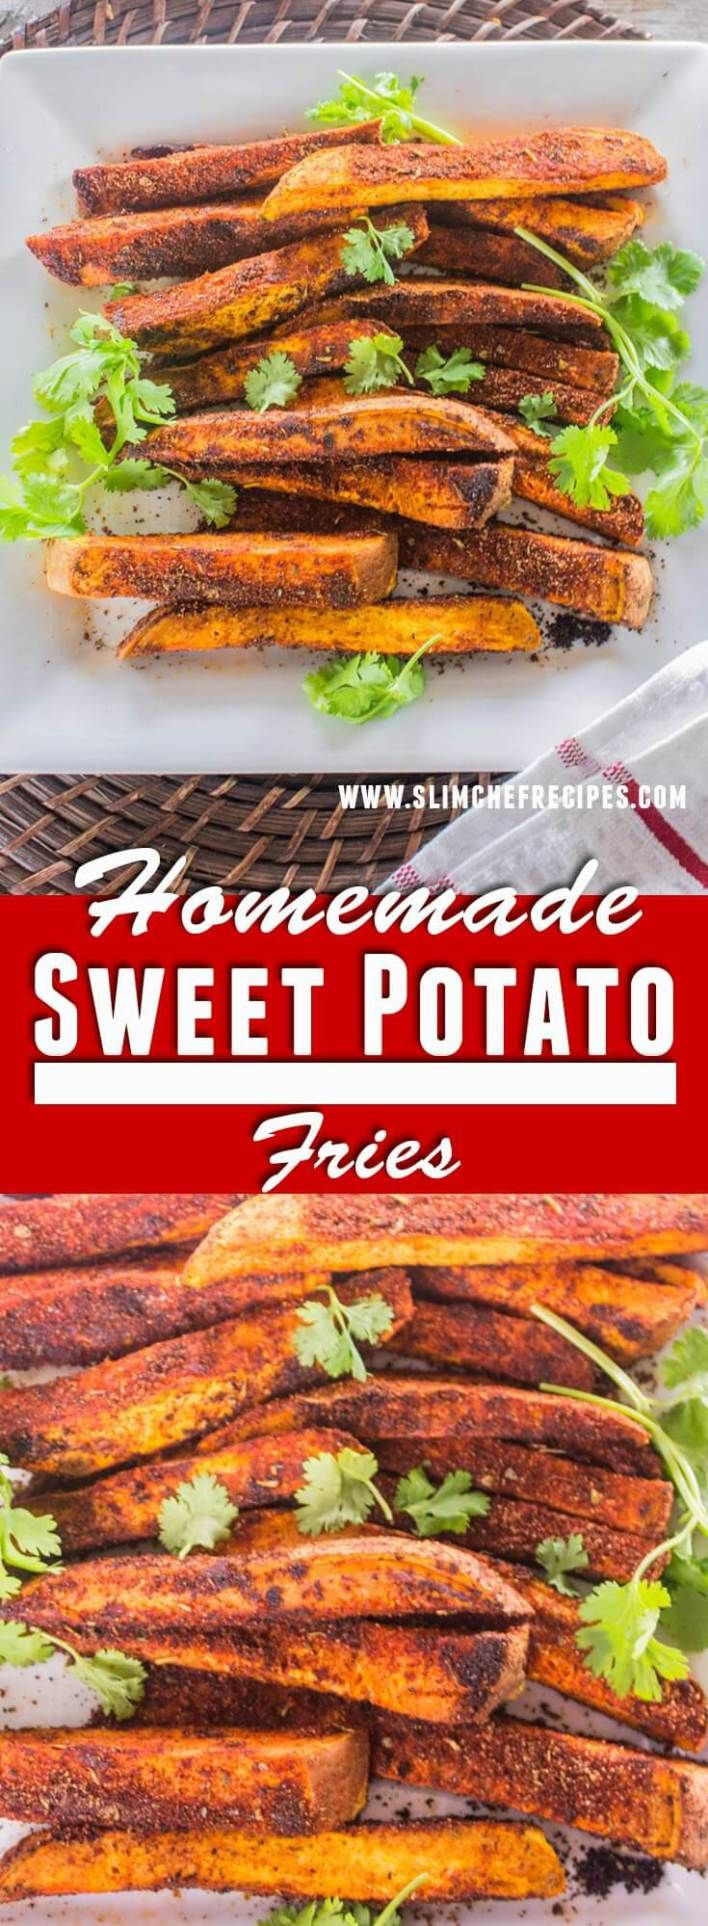 This homemade sweet potato fries recipe is a delicious oven baked snack that won't ruin your diet. It's a wonderful alternative to regular deep fried french fries | slimchefrecipes.com